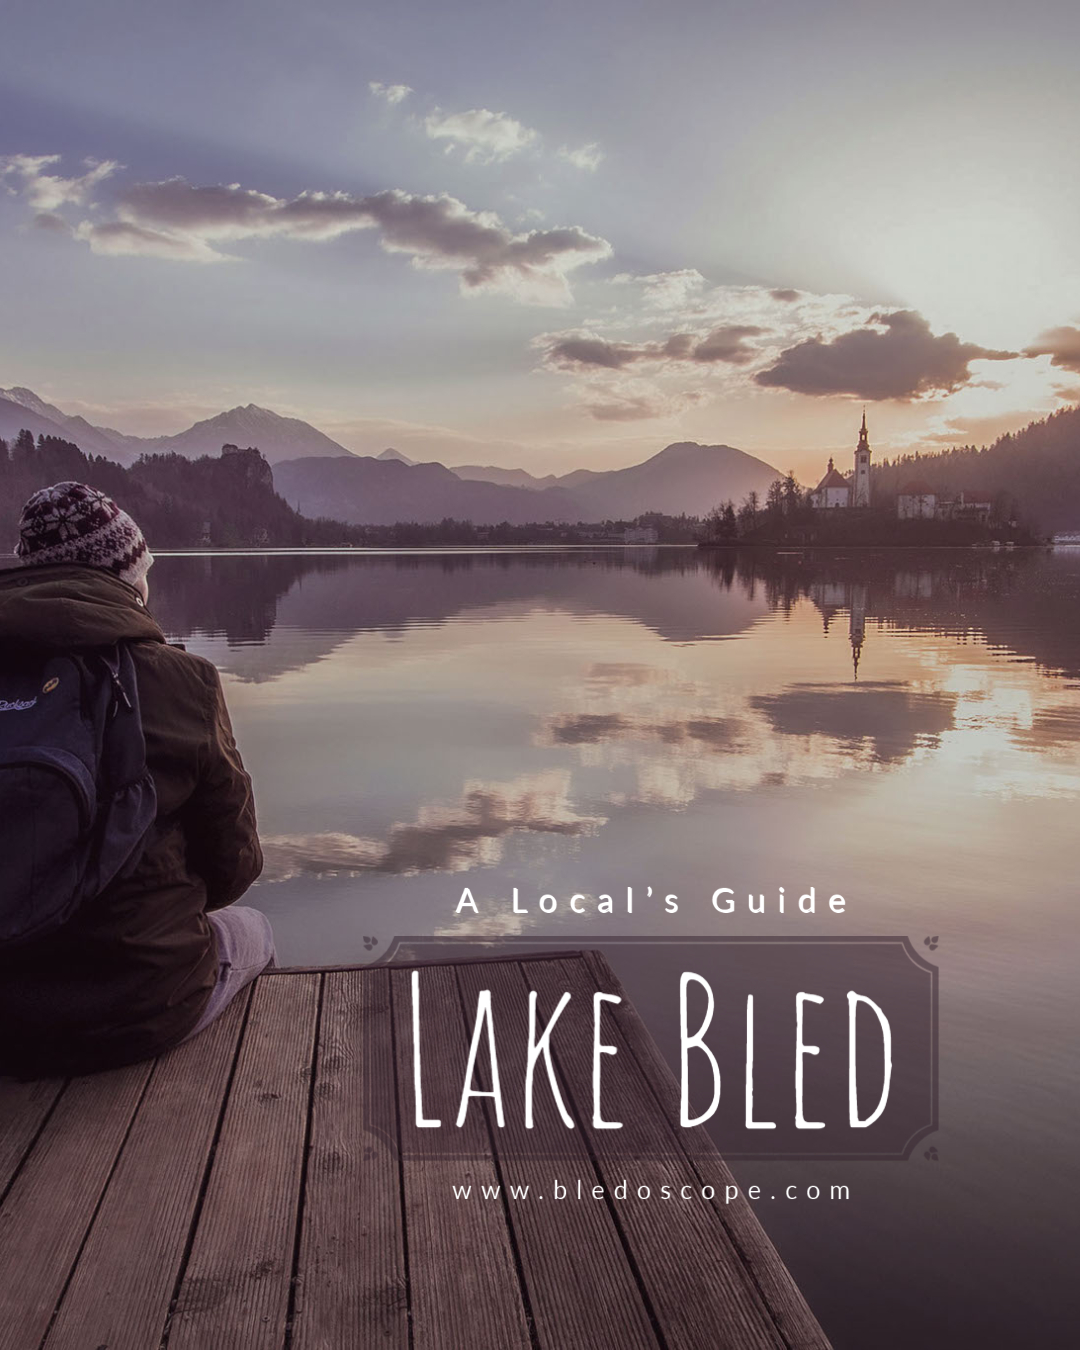 A Local' Guide to Lake Bled